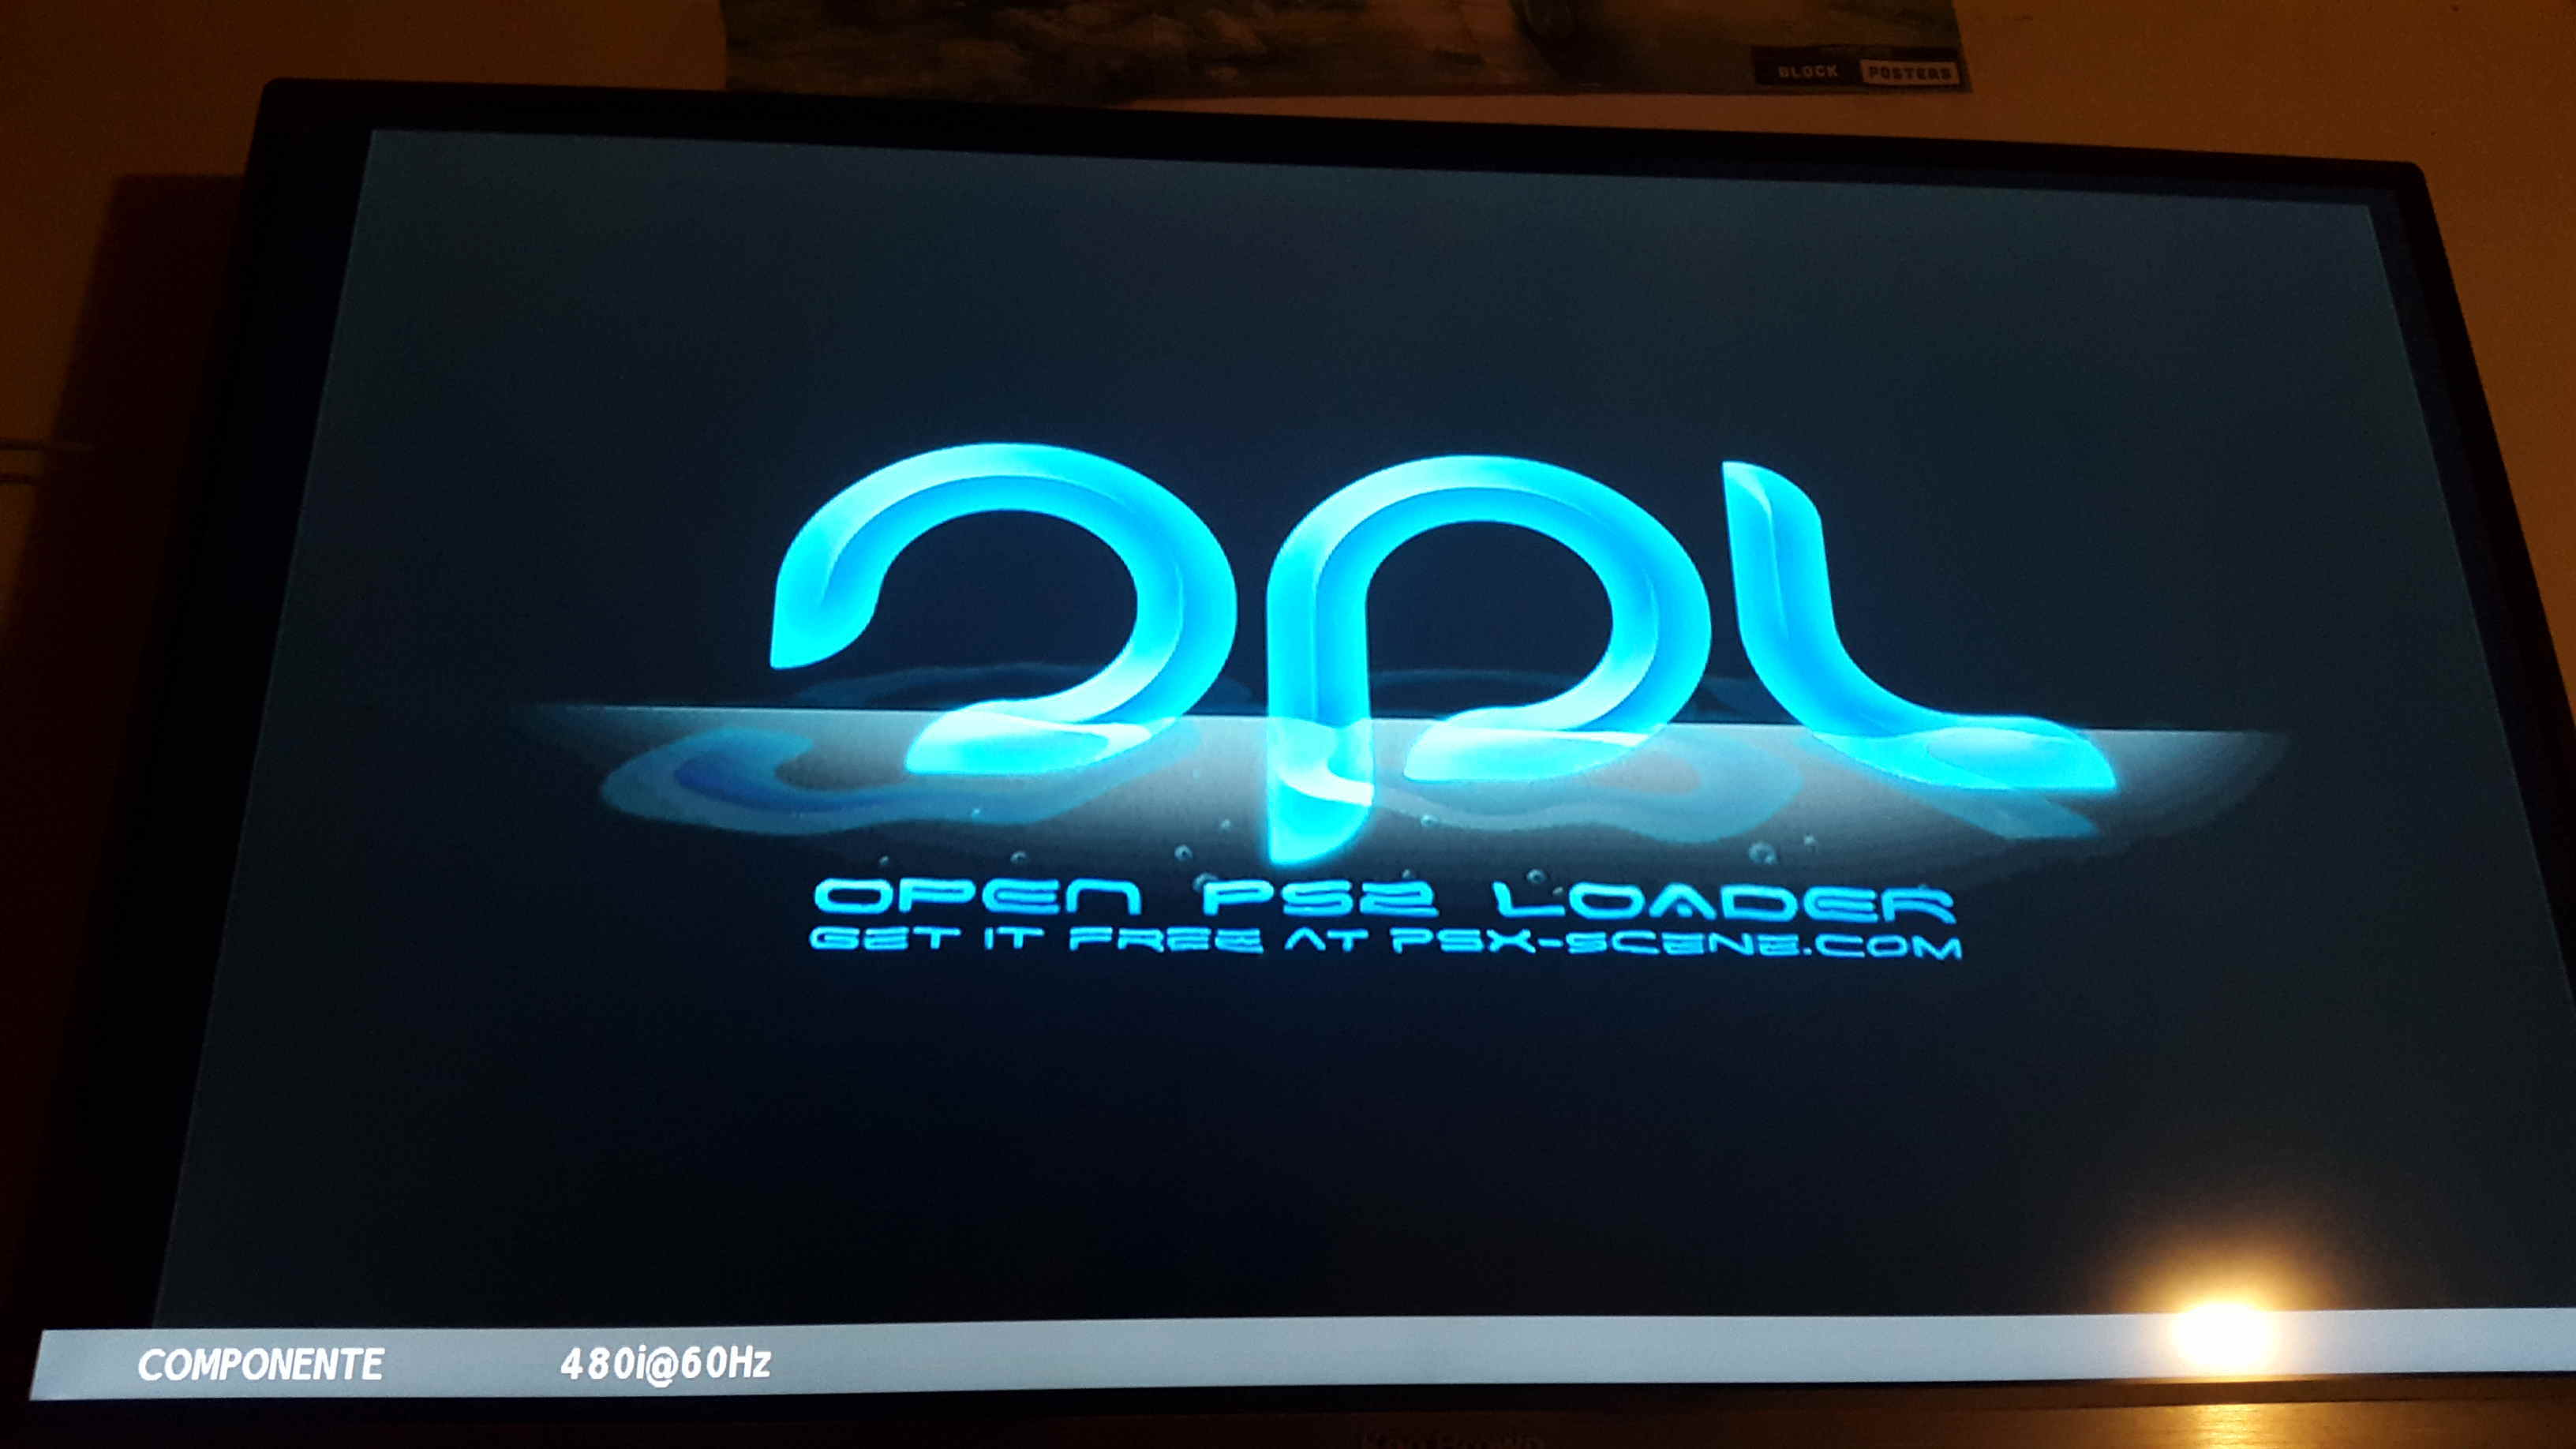 [PS2] Tutorial UlaunchElf + Open PS2 Loader